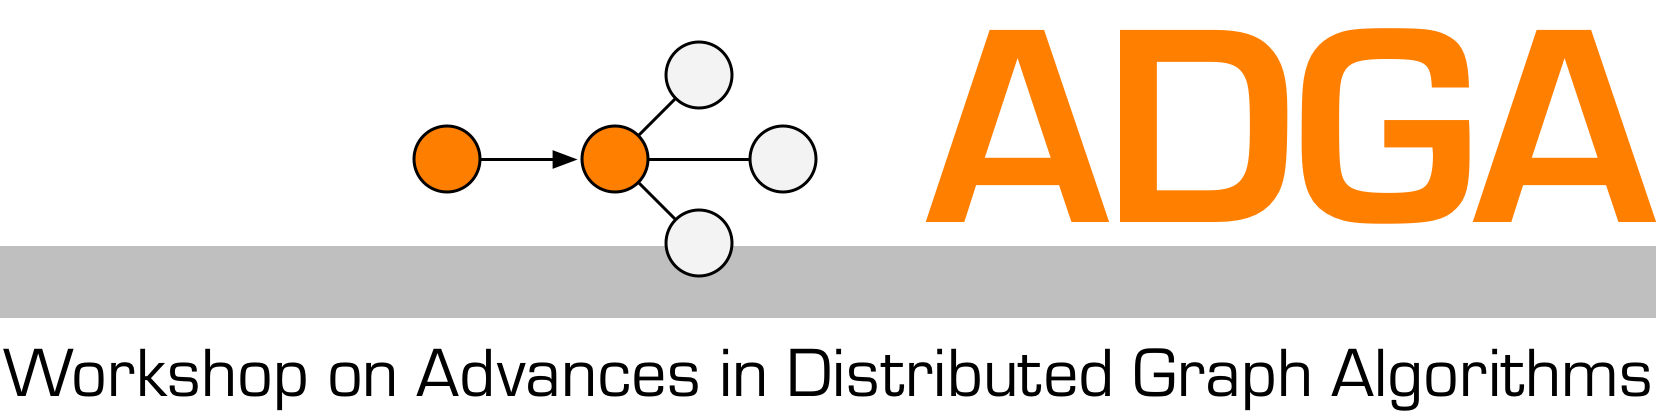 ADGA 2020: 9th Workshop on Advances in Distributed Graph Algorithms